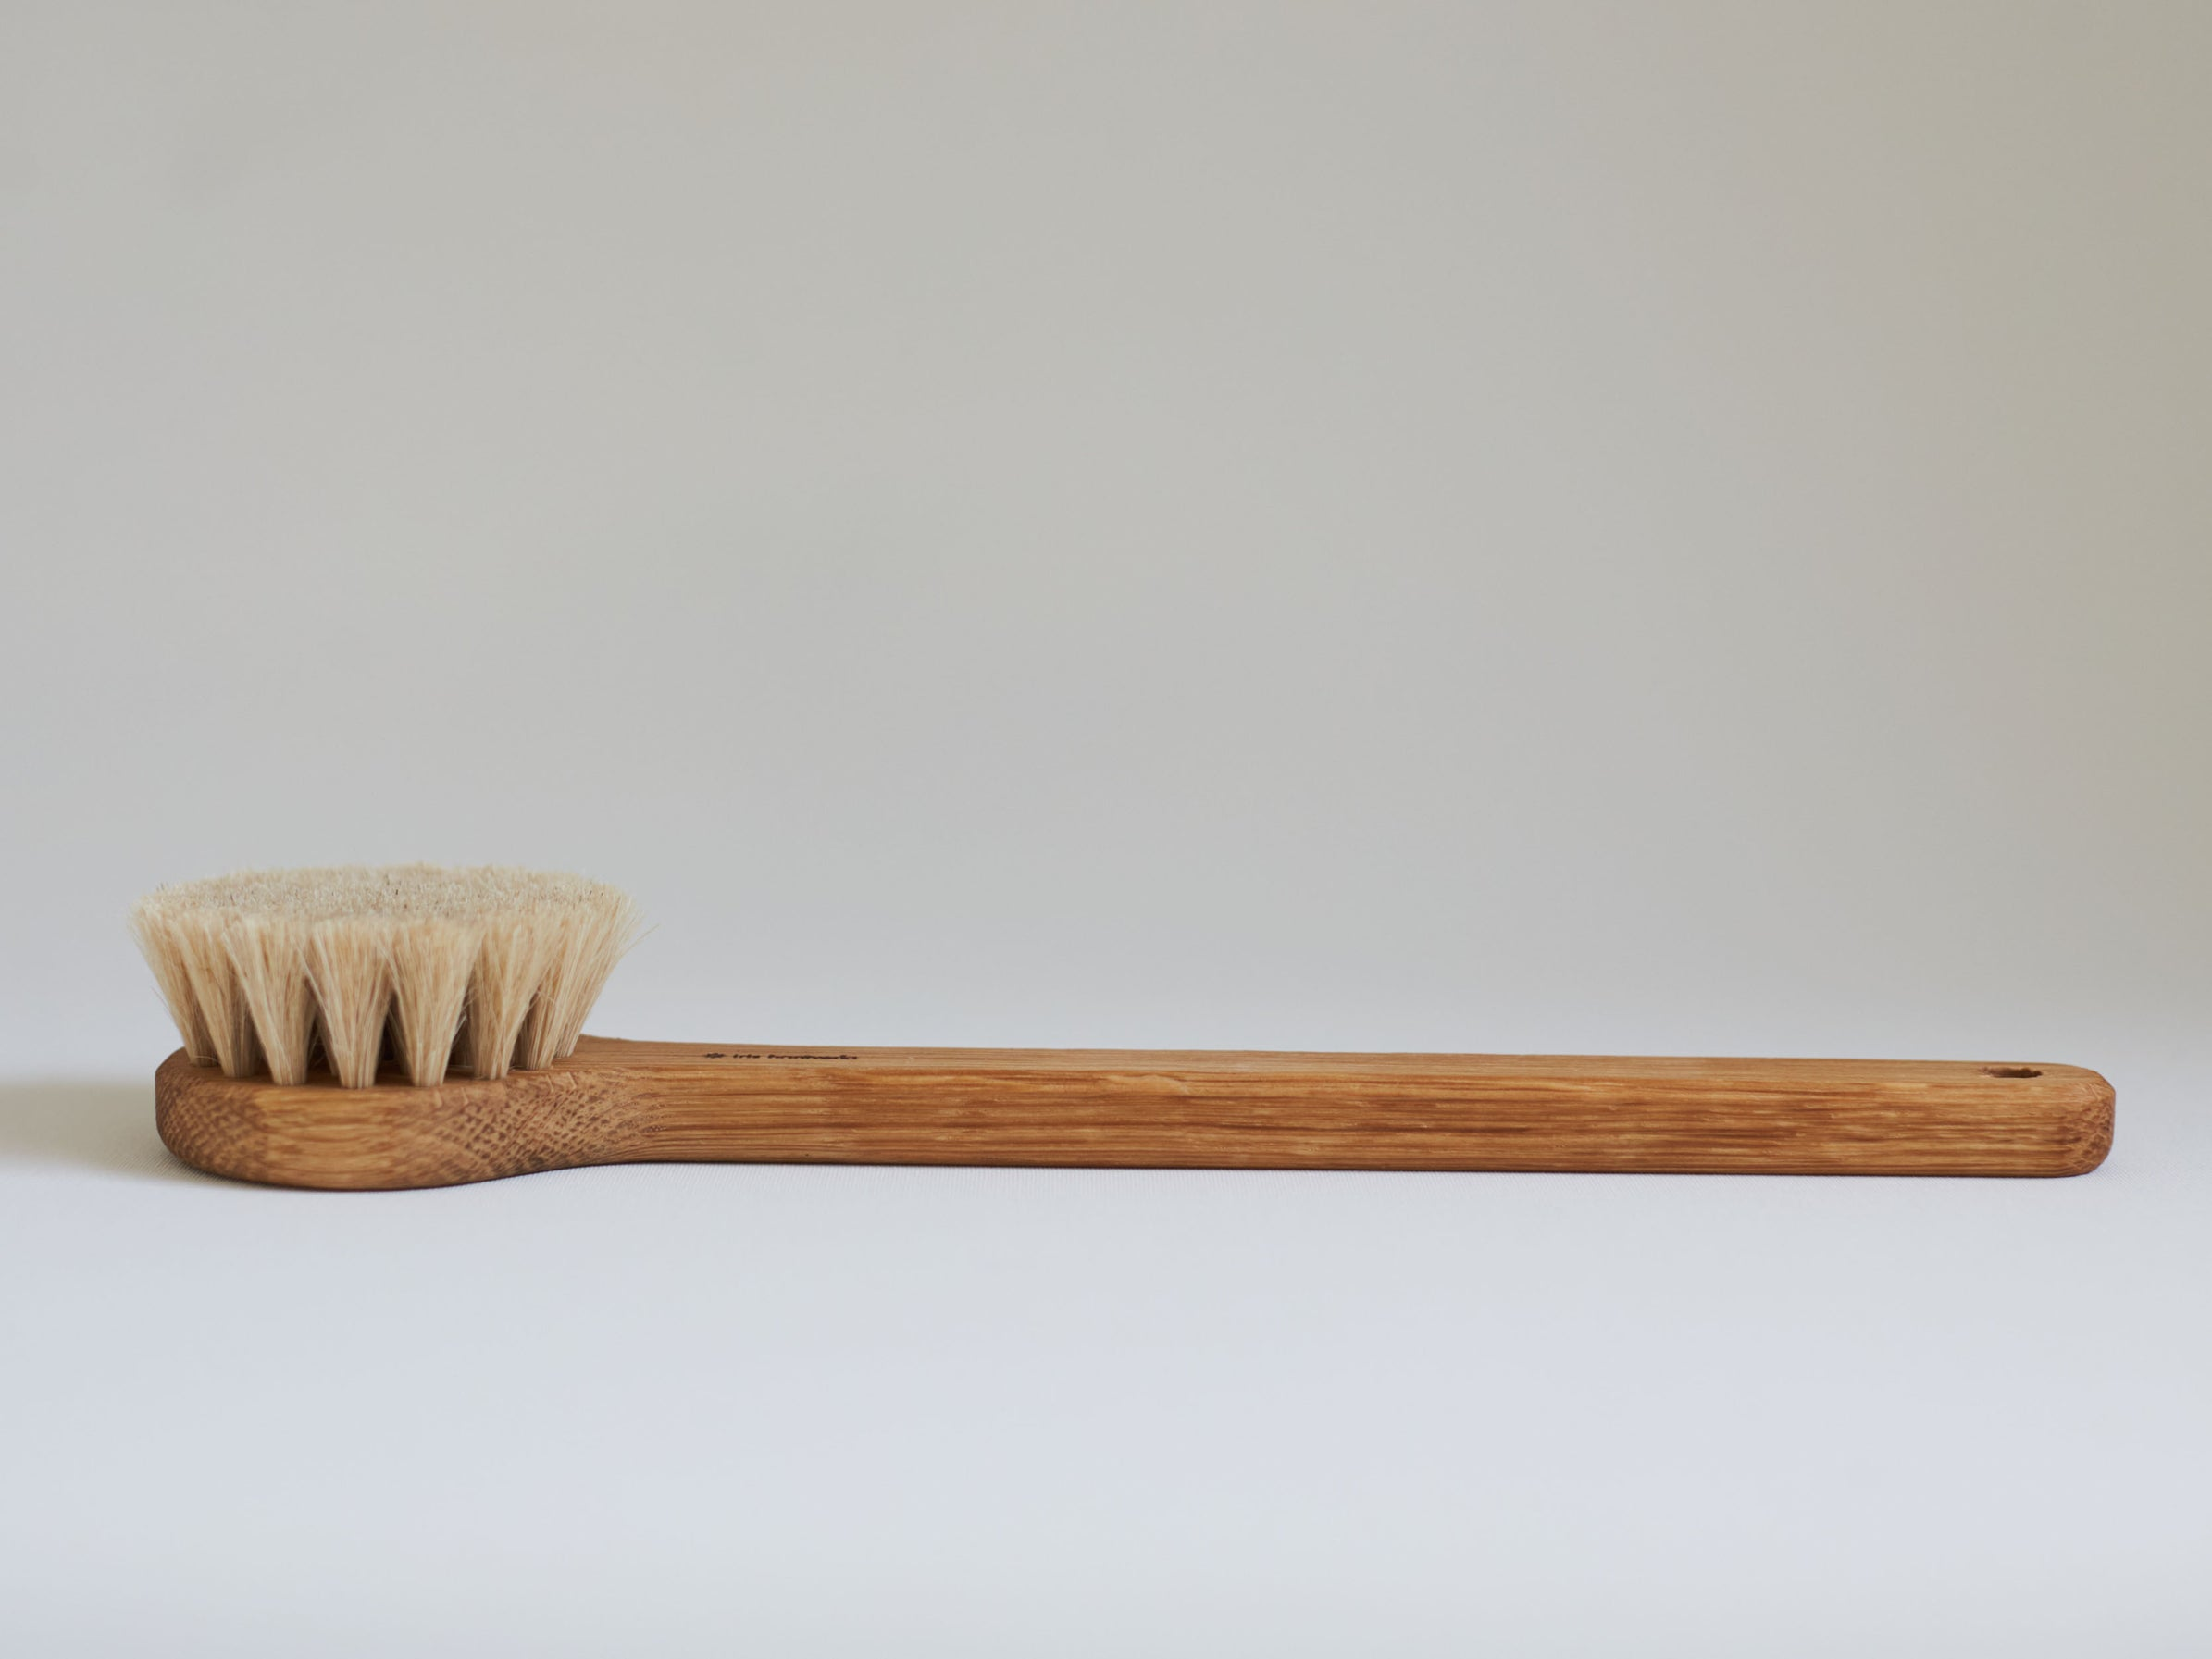 Iris Hankvertk Bath brush Lovisa